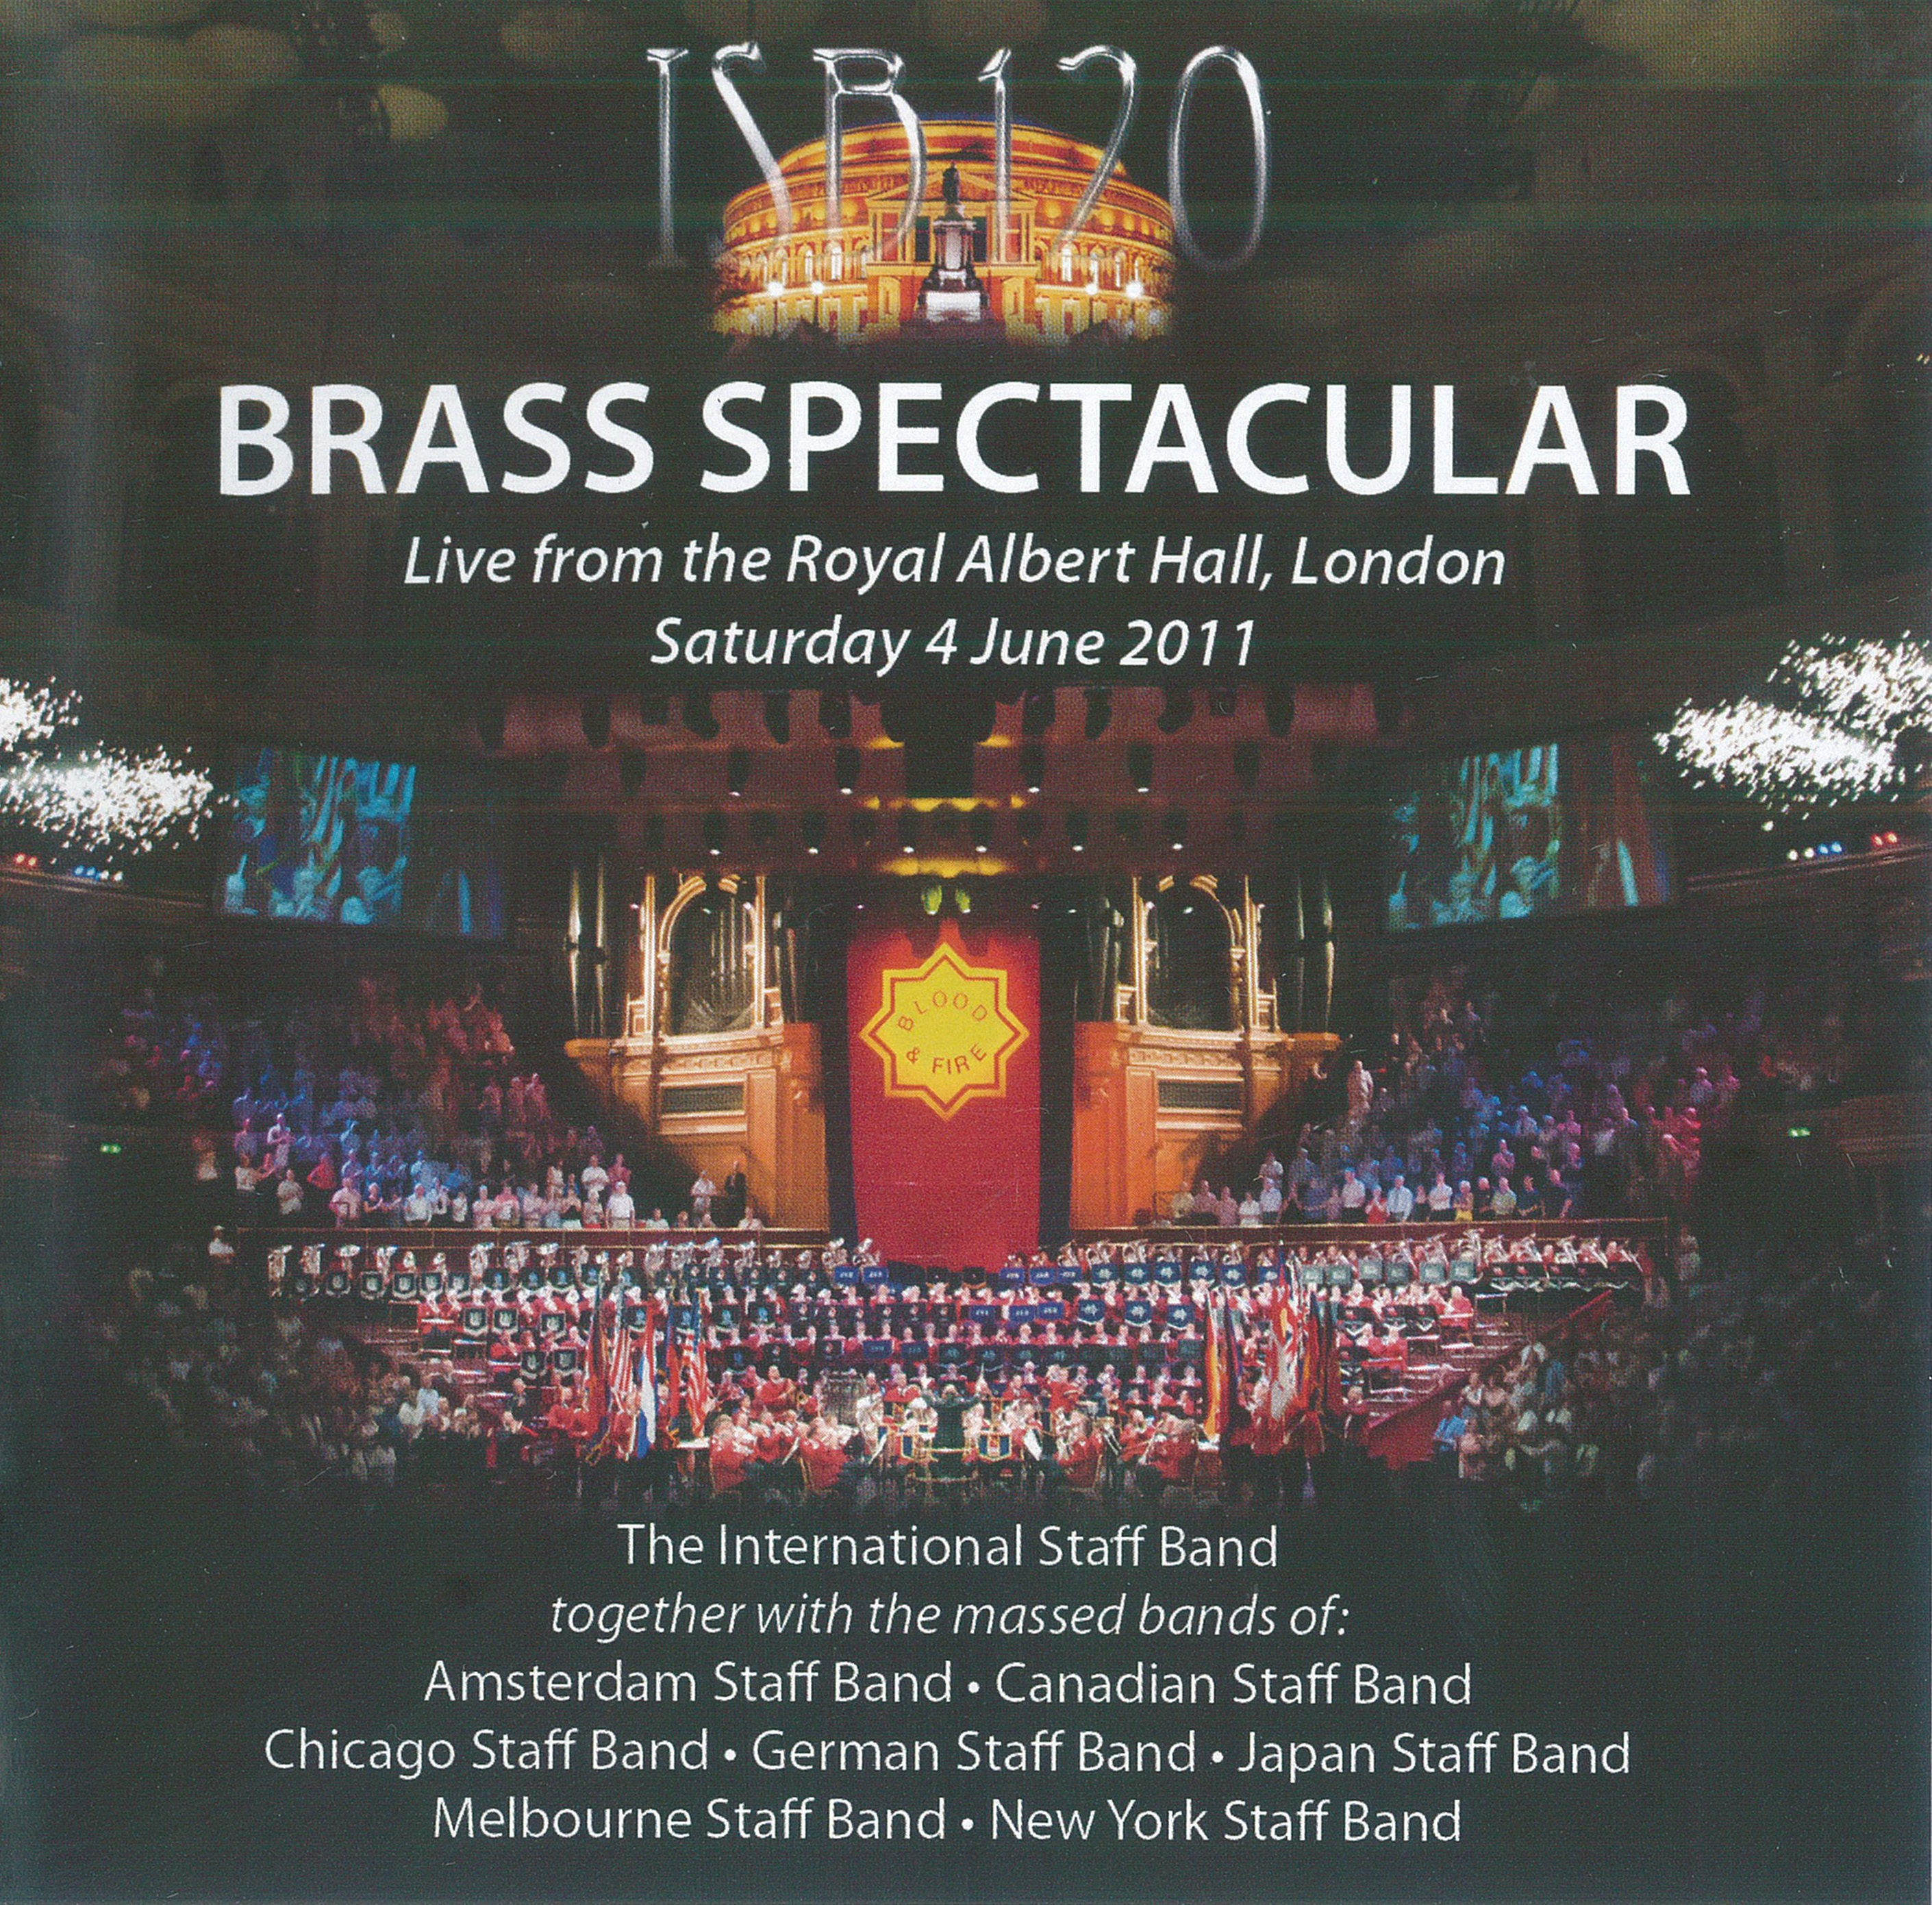 ISB120 Brass Spectacular (Saturday Evening) - Download